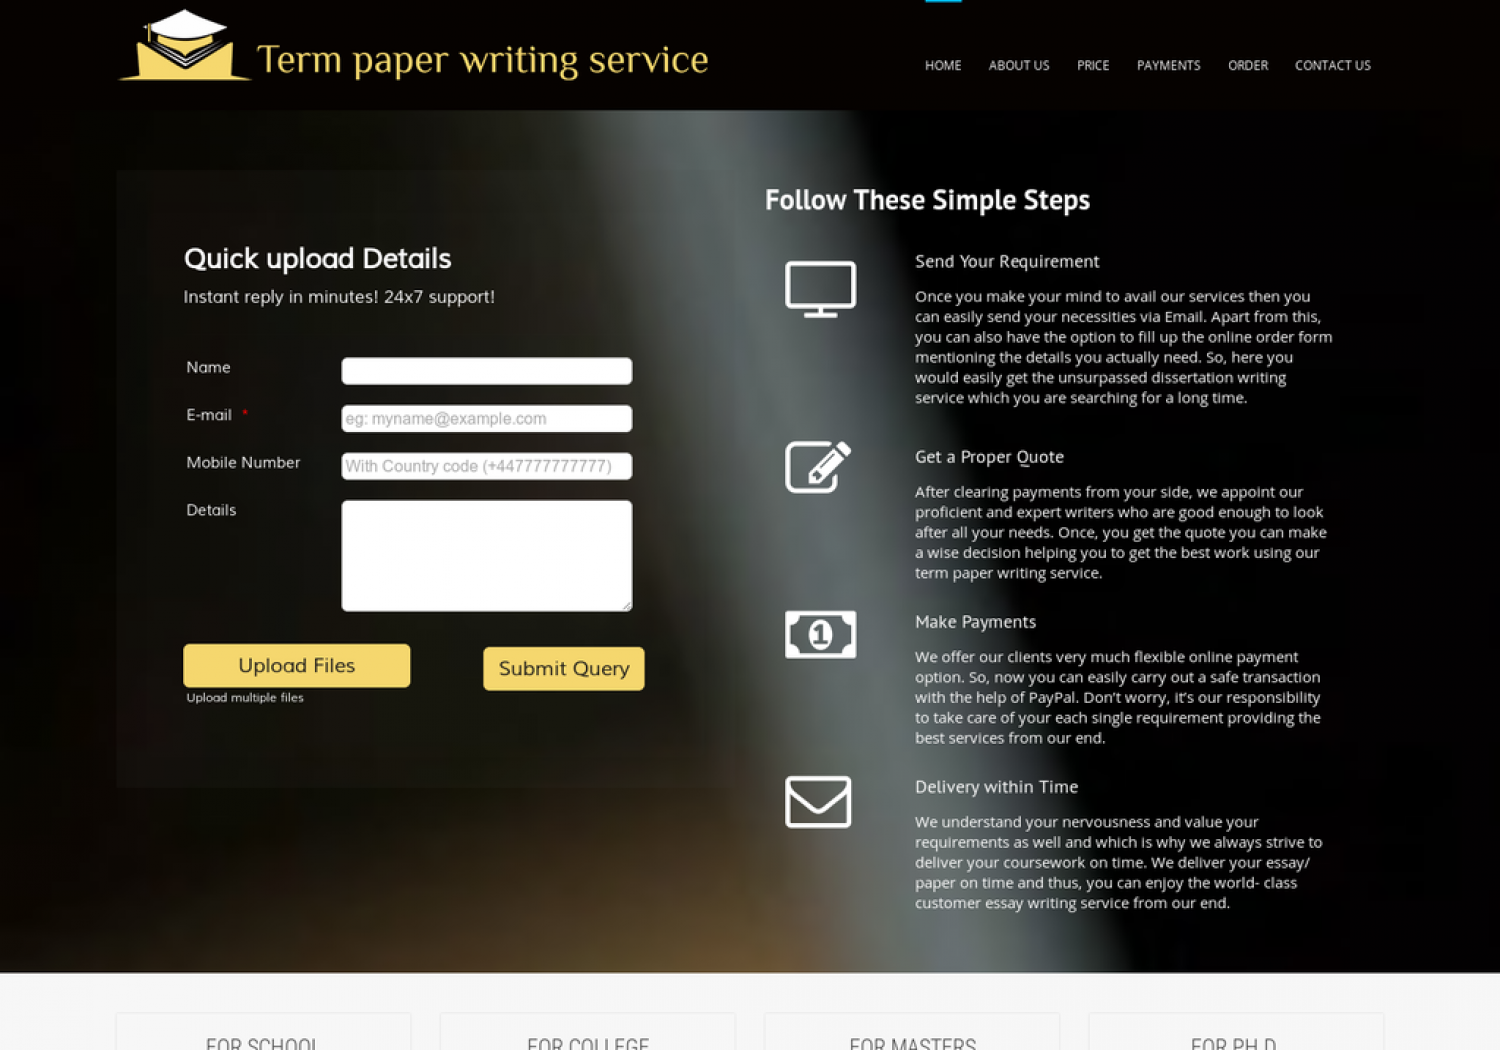 Term Paper Writing Service Infographic